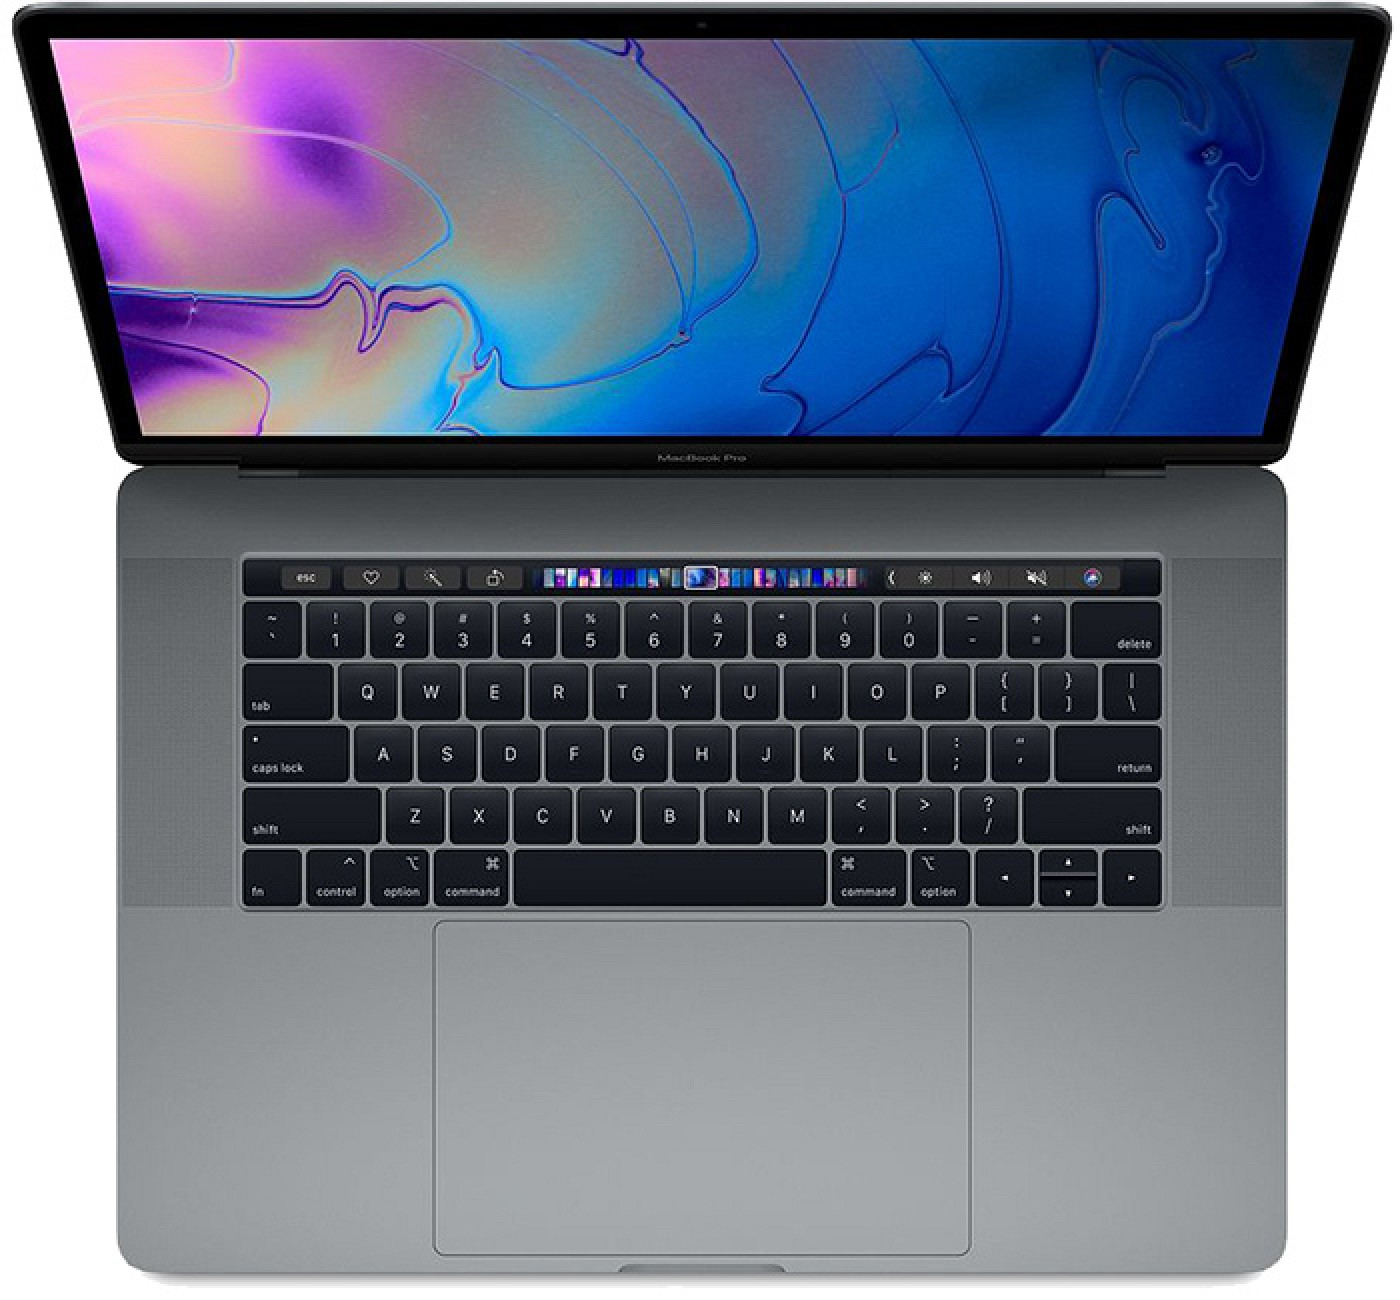 The MacBook Pro with Touch Bar